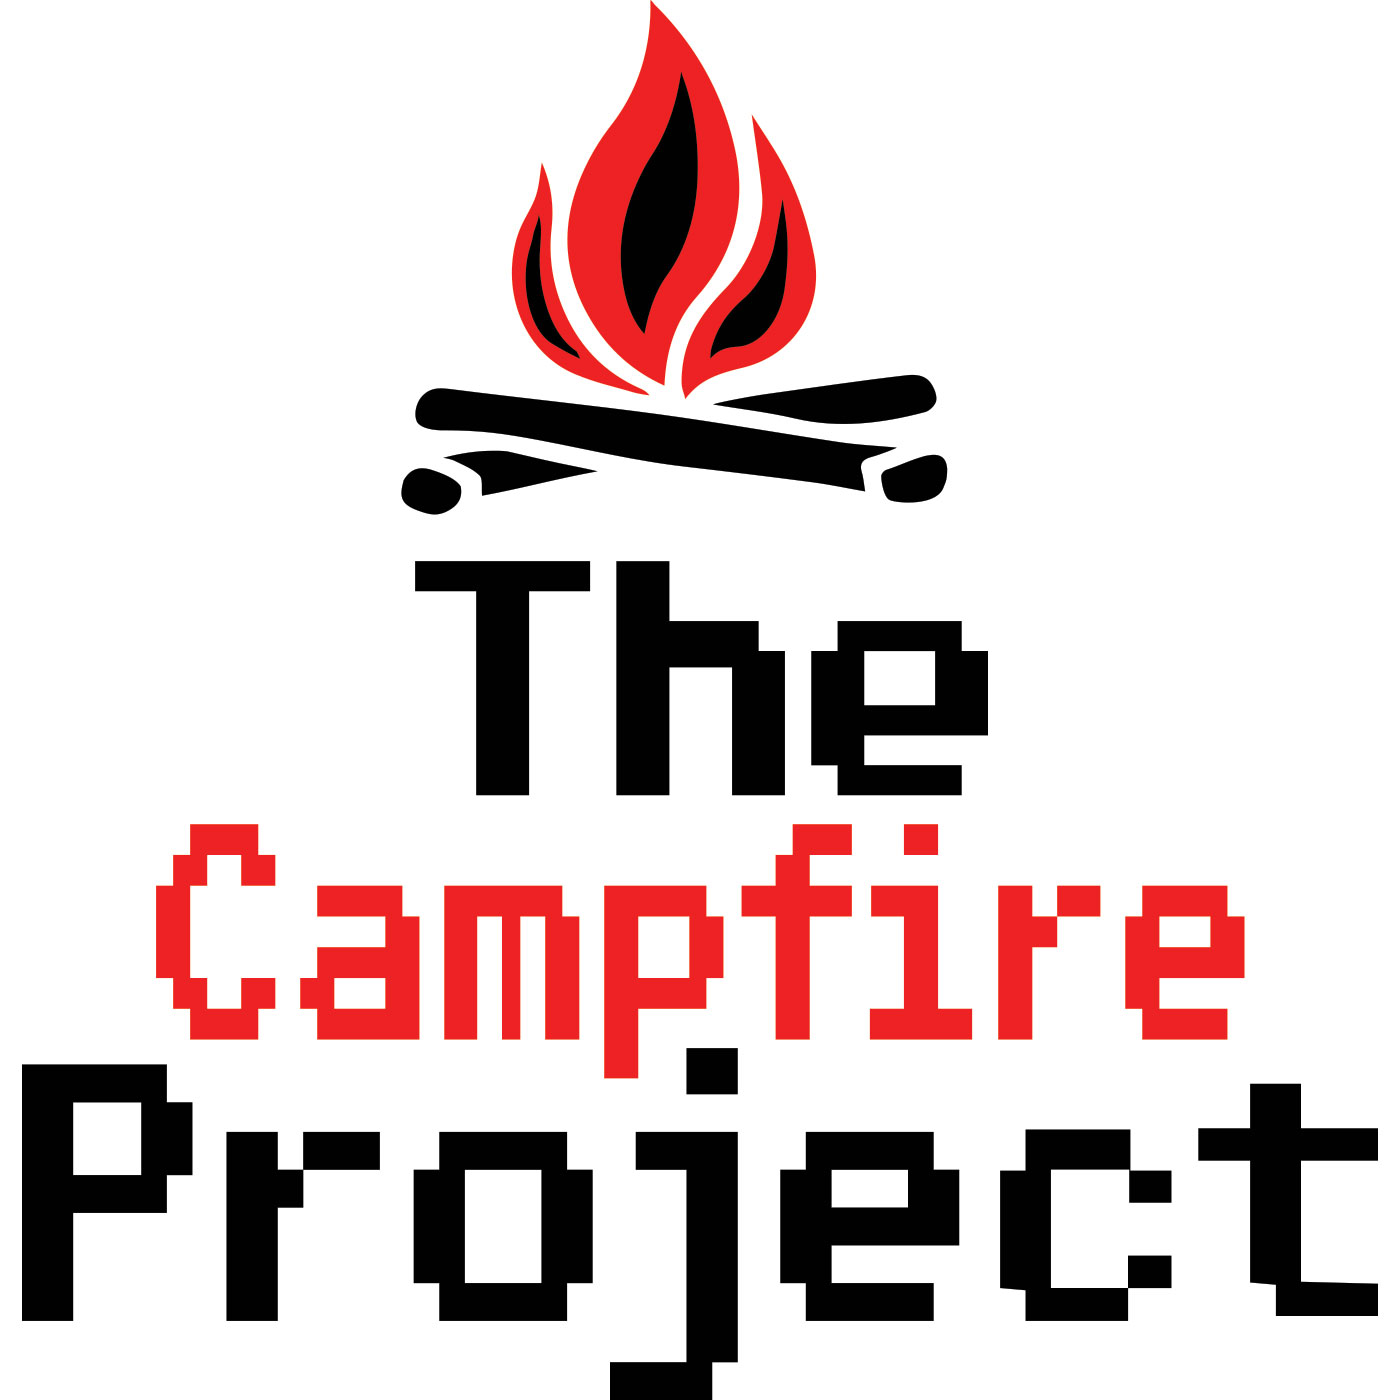 096 opening up the campfire project  podcast iPad Layout iPad 2 User Guide